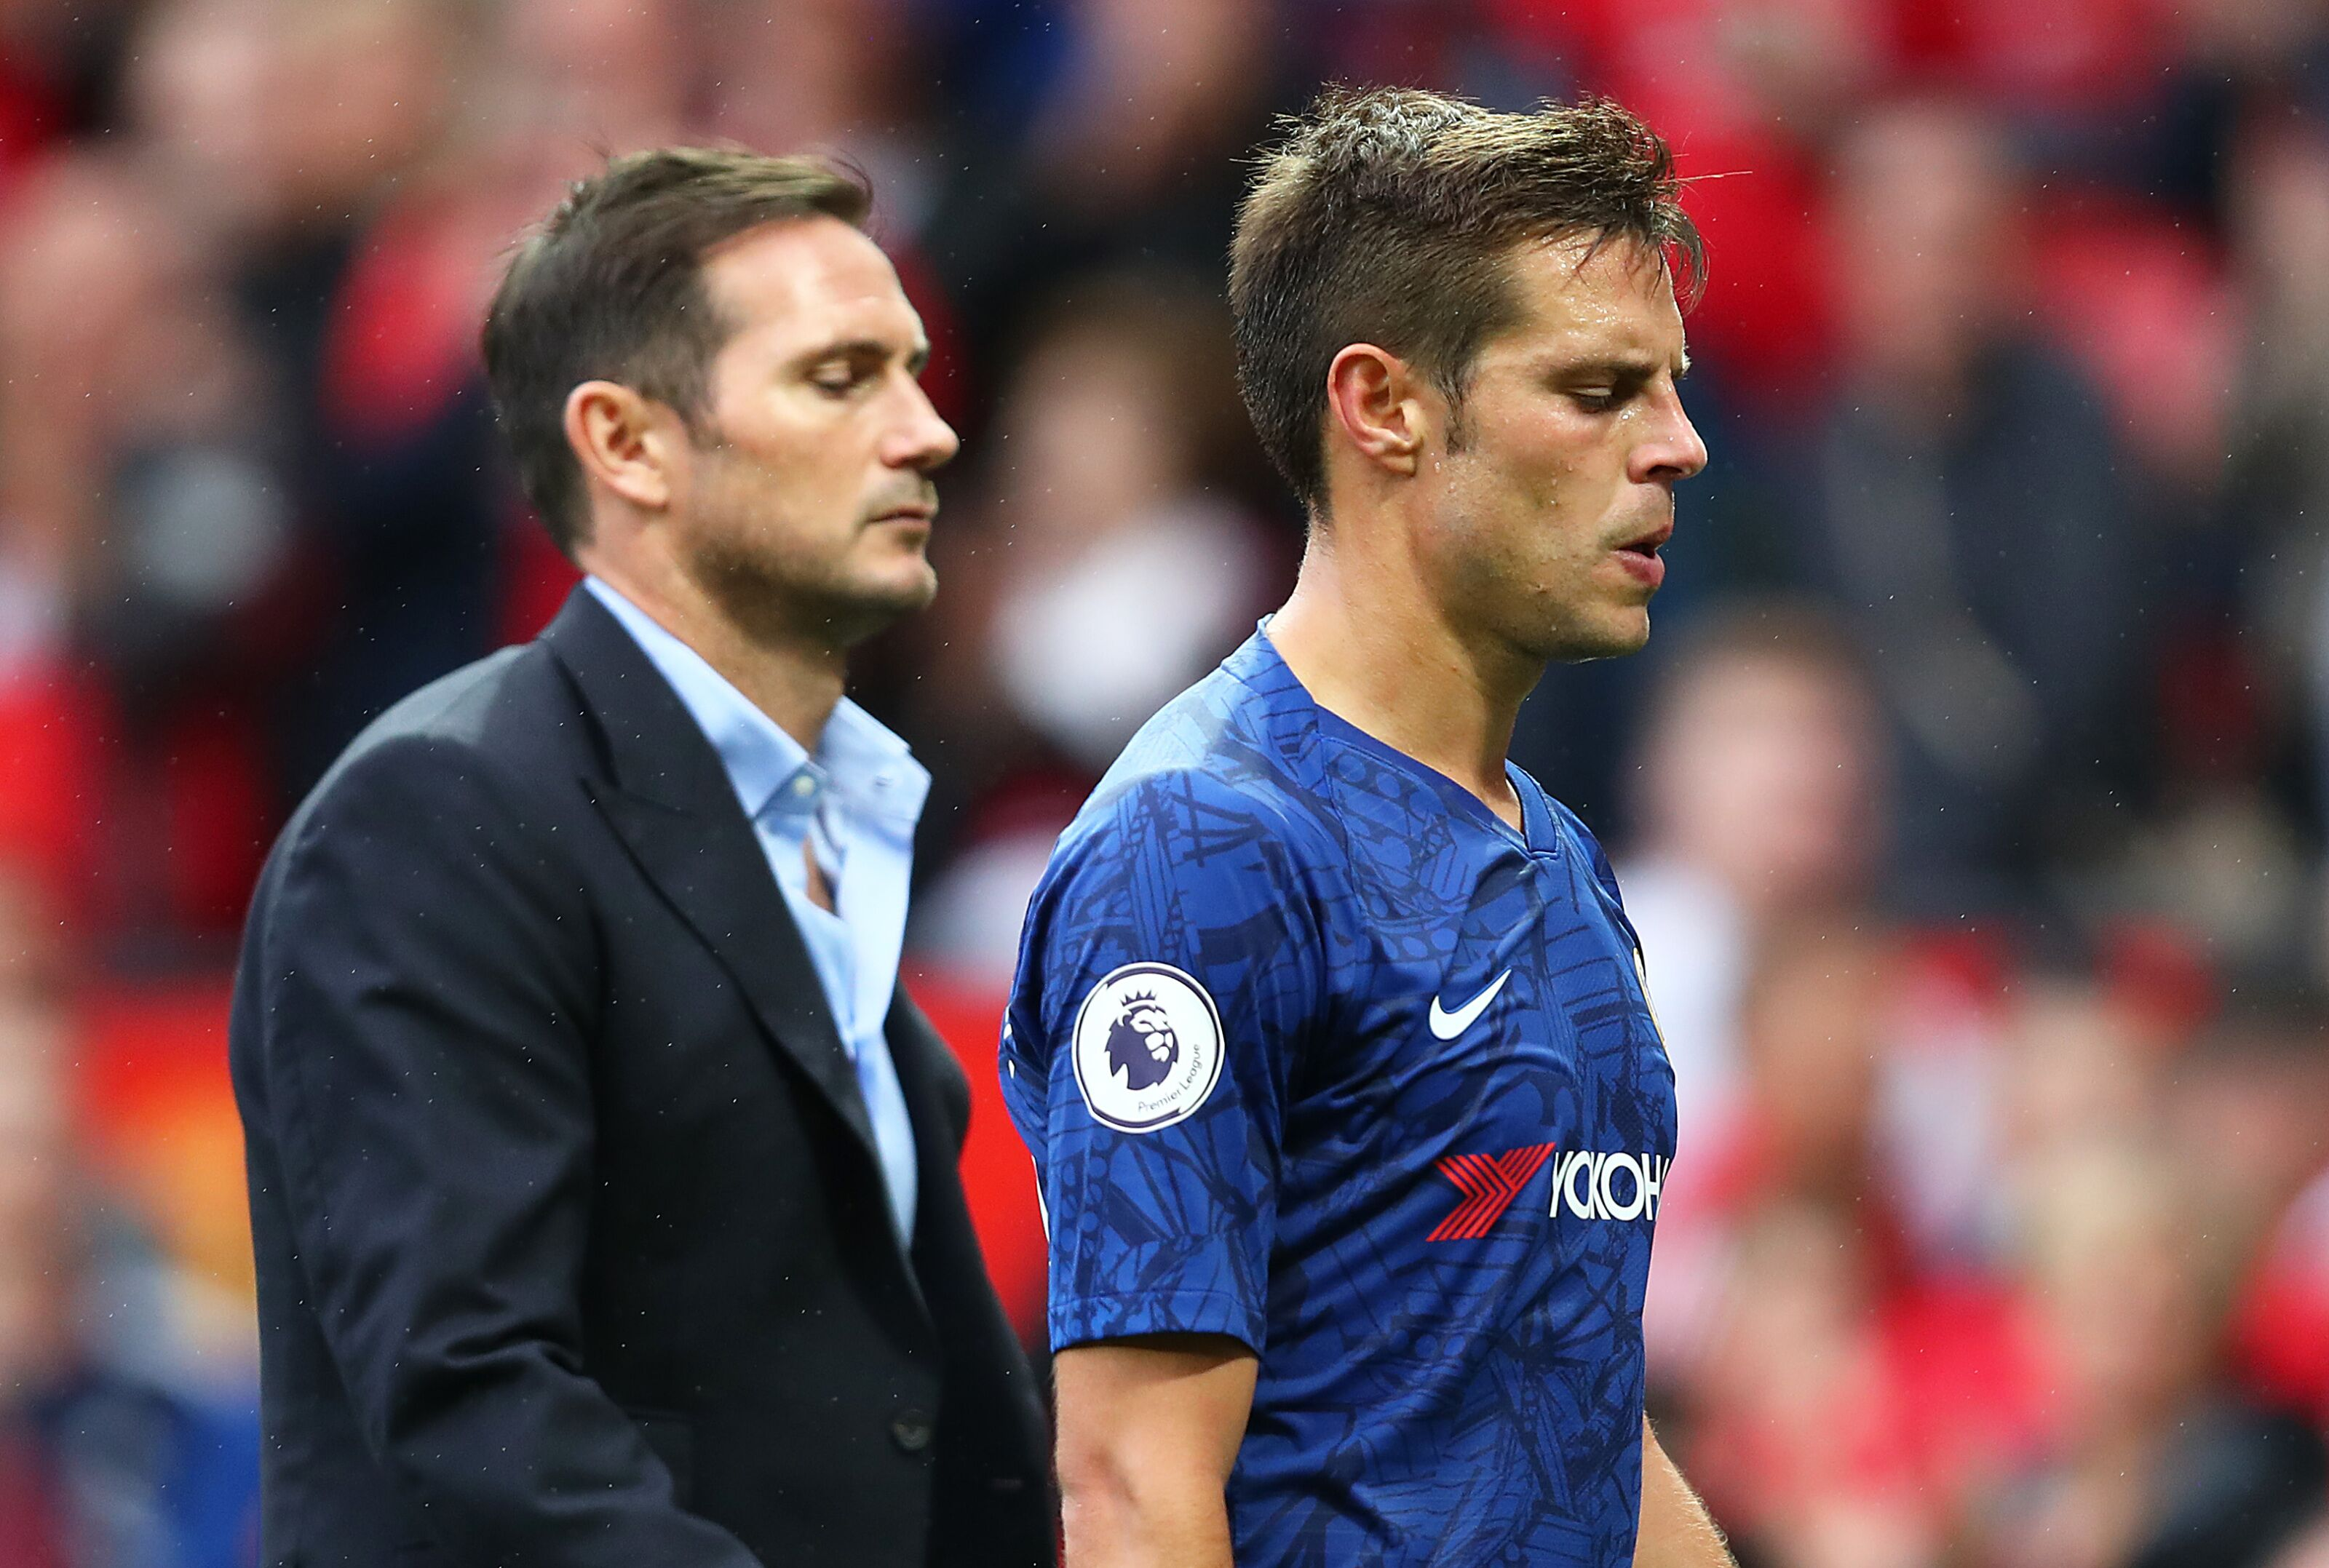 Chelsea's tactics, XI, subs, transfers: Everyone needs a Plan B after Newcastle